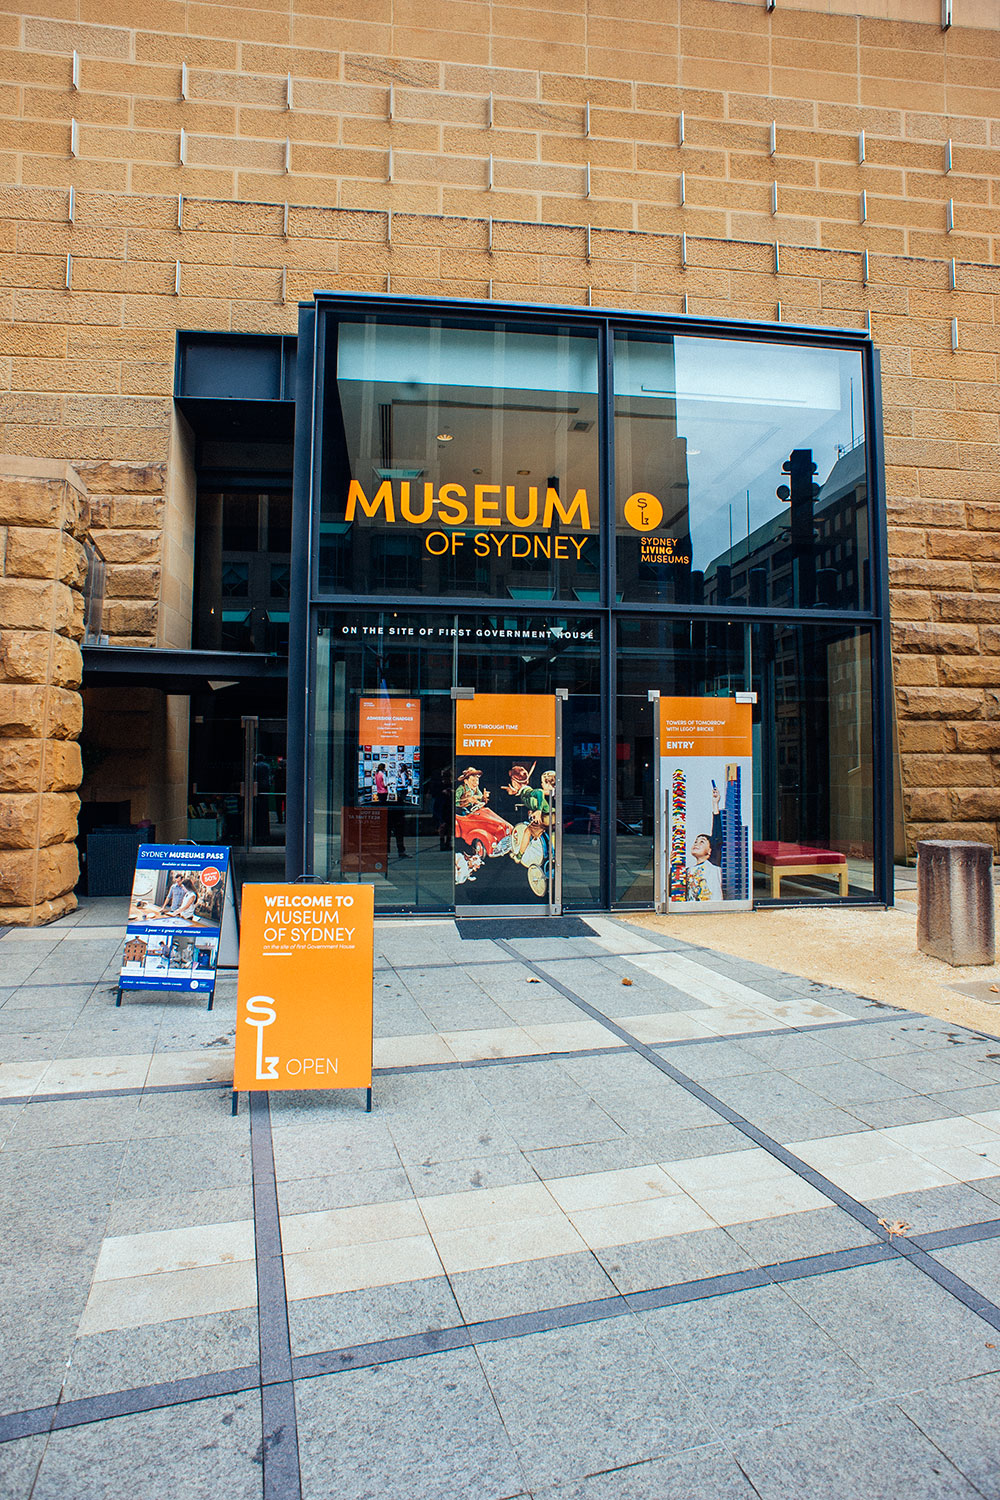 The entrance of the Museum of Sydney